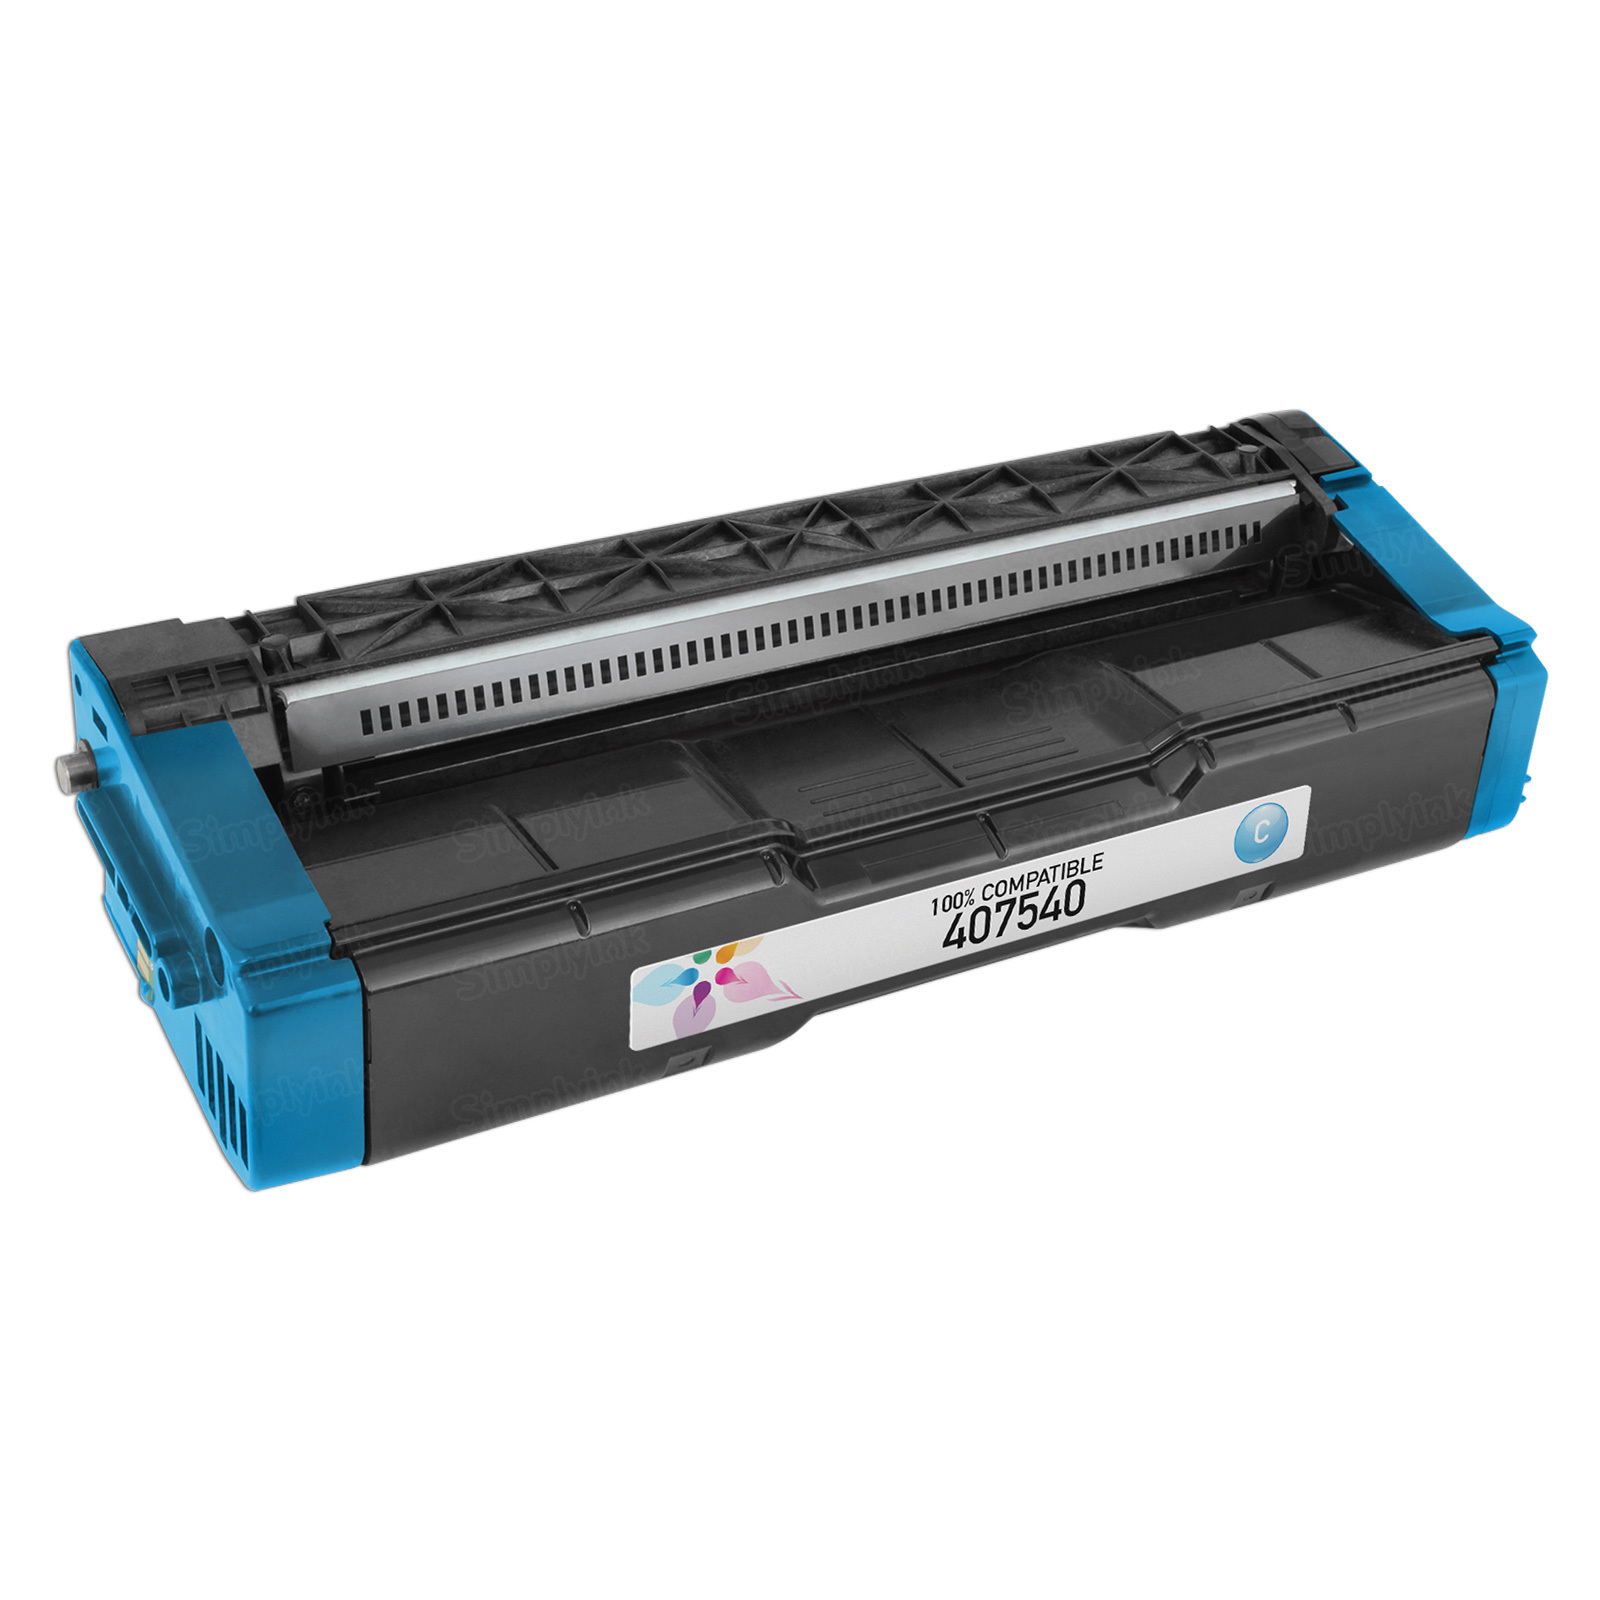 Compatible 407540 Cyan Toner for Ricoh